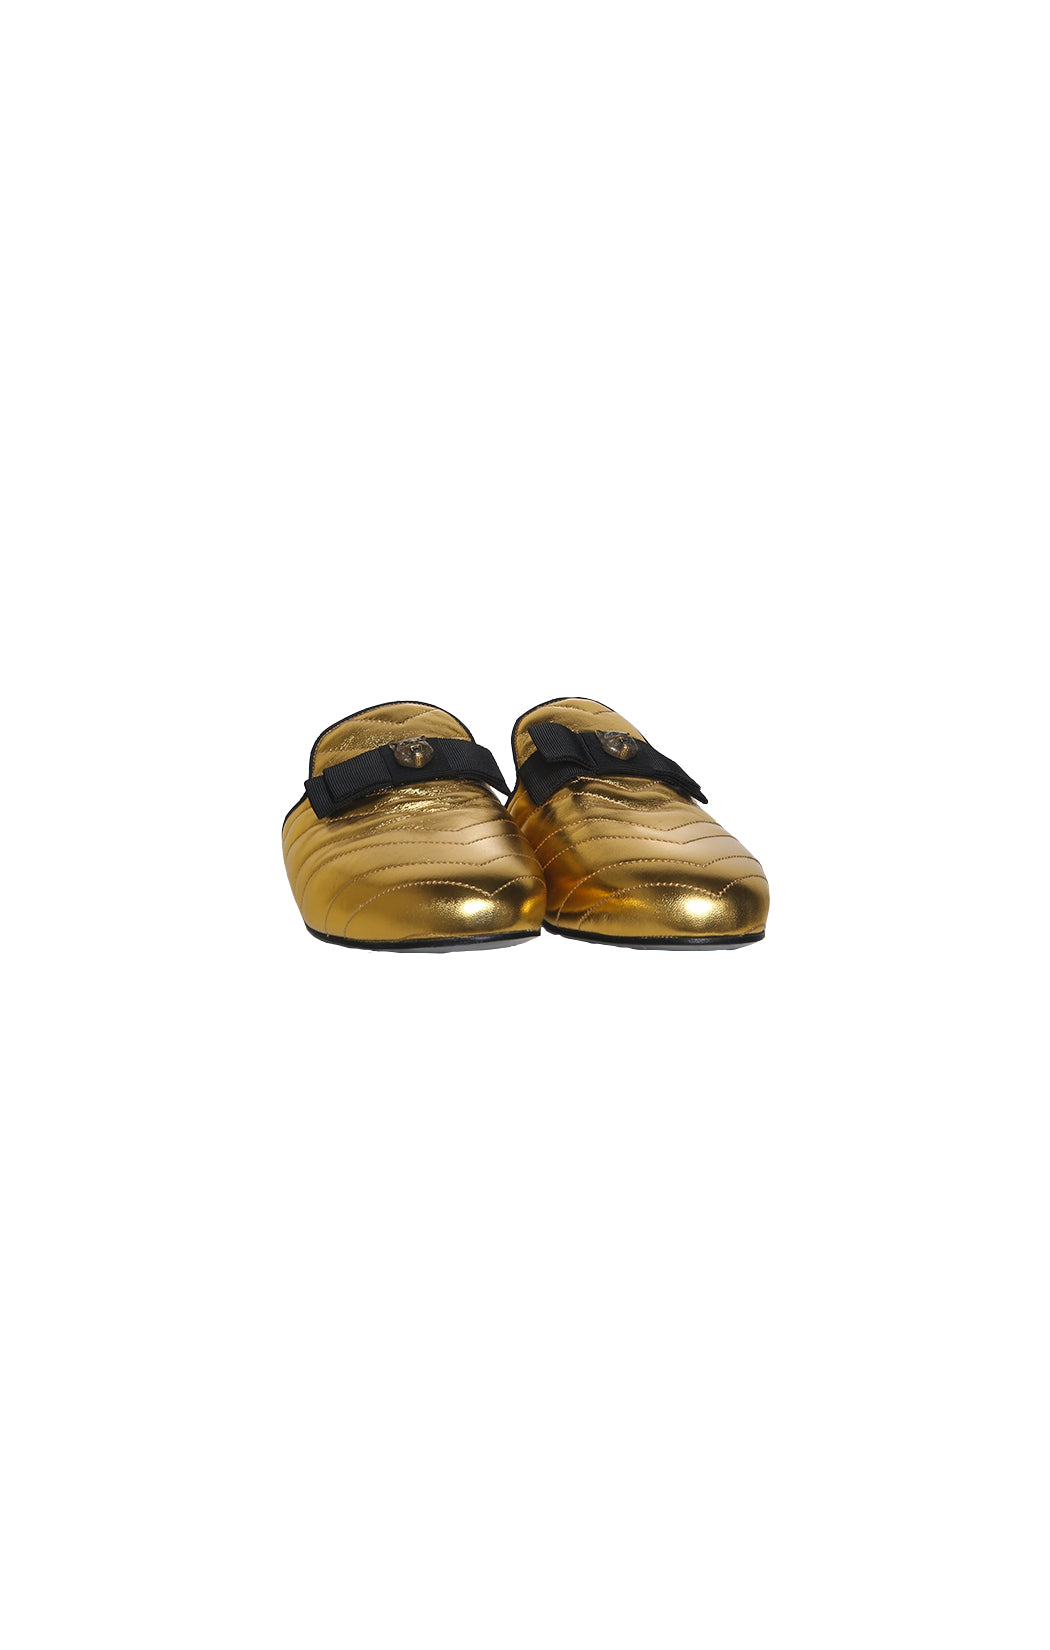 Front view of GUCCI  Gold Mule Size: 39 (US 9)